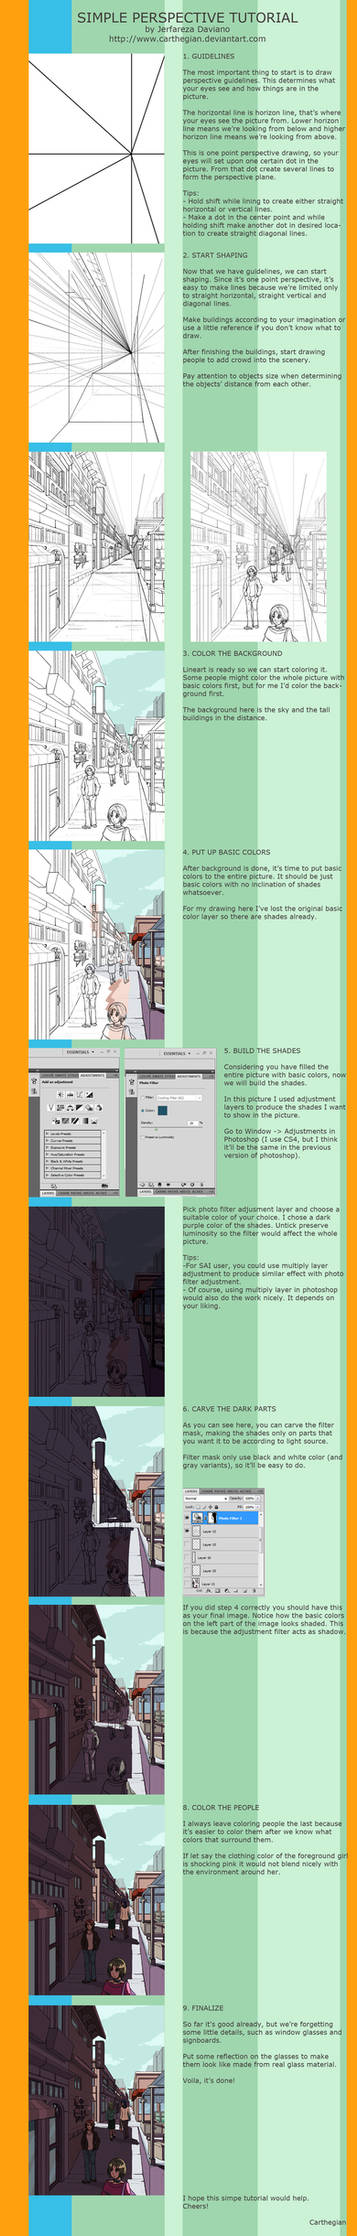 Simple Perspective Tutorial